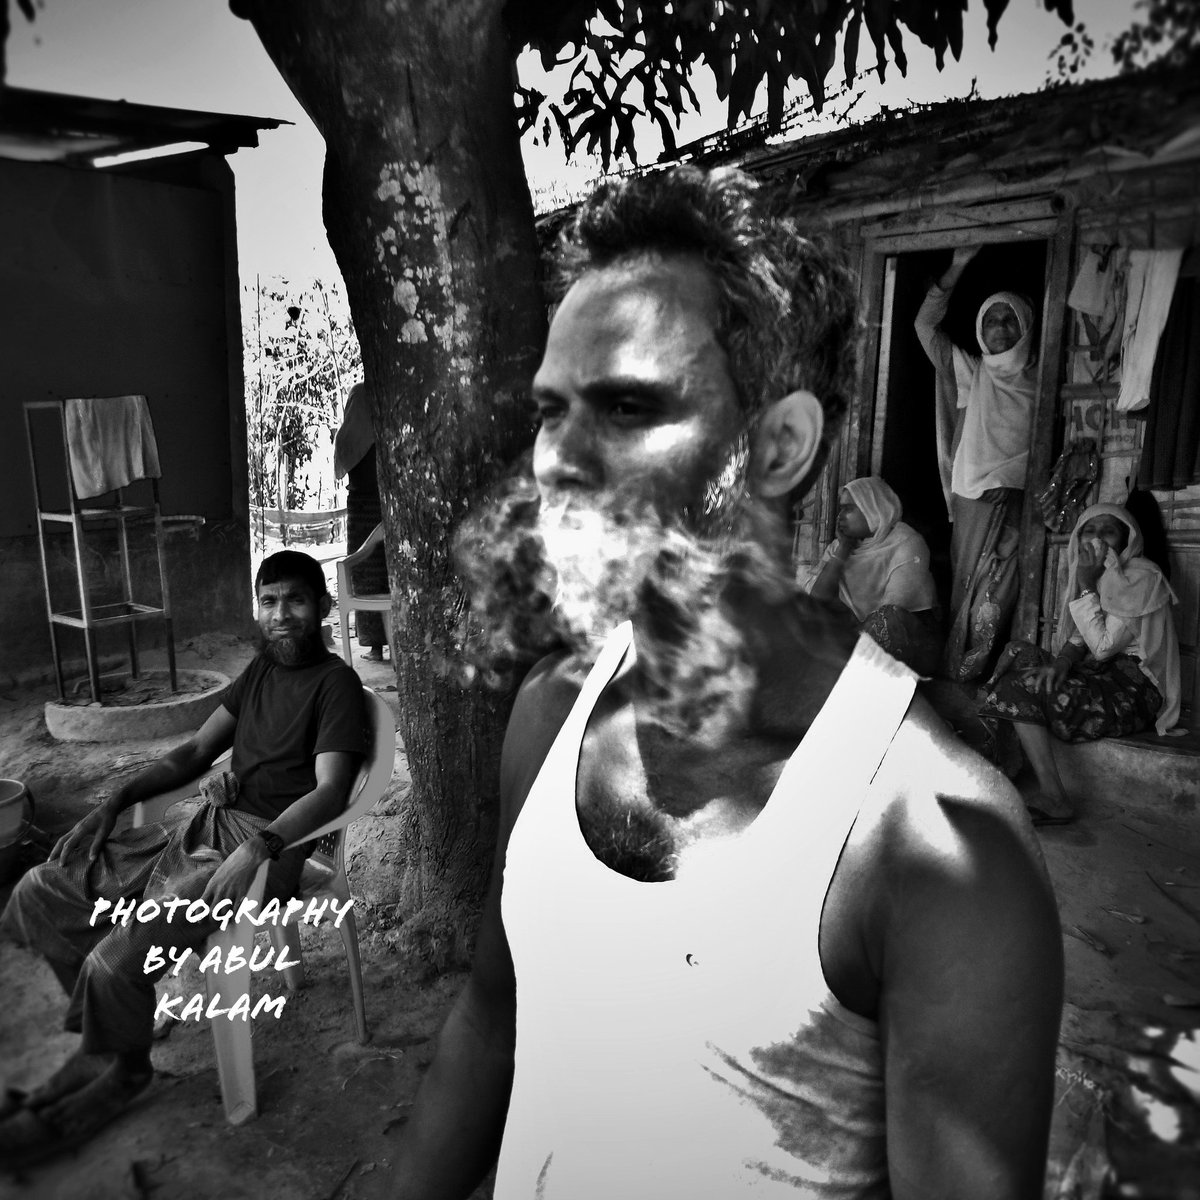 #My photography in the world .  #Refugee Camp Cox's Bazar in Bangladesh.  Date 01/04/2020/.